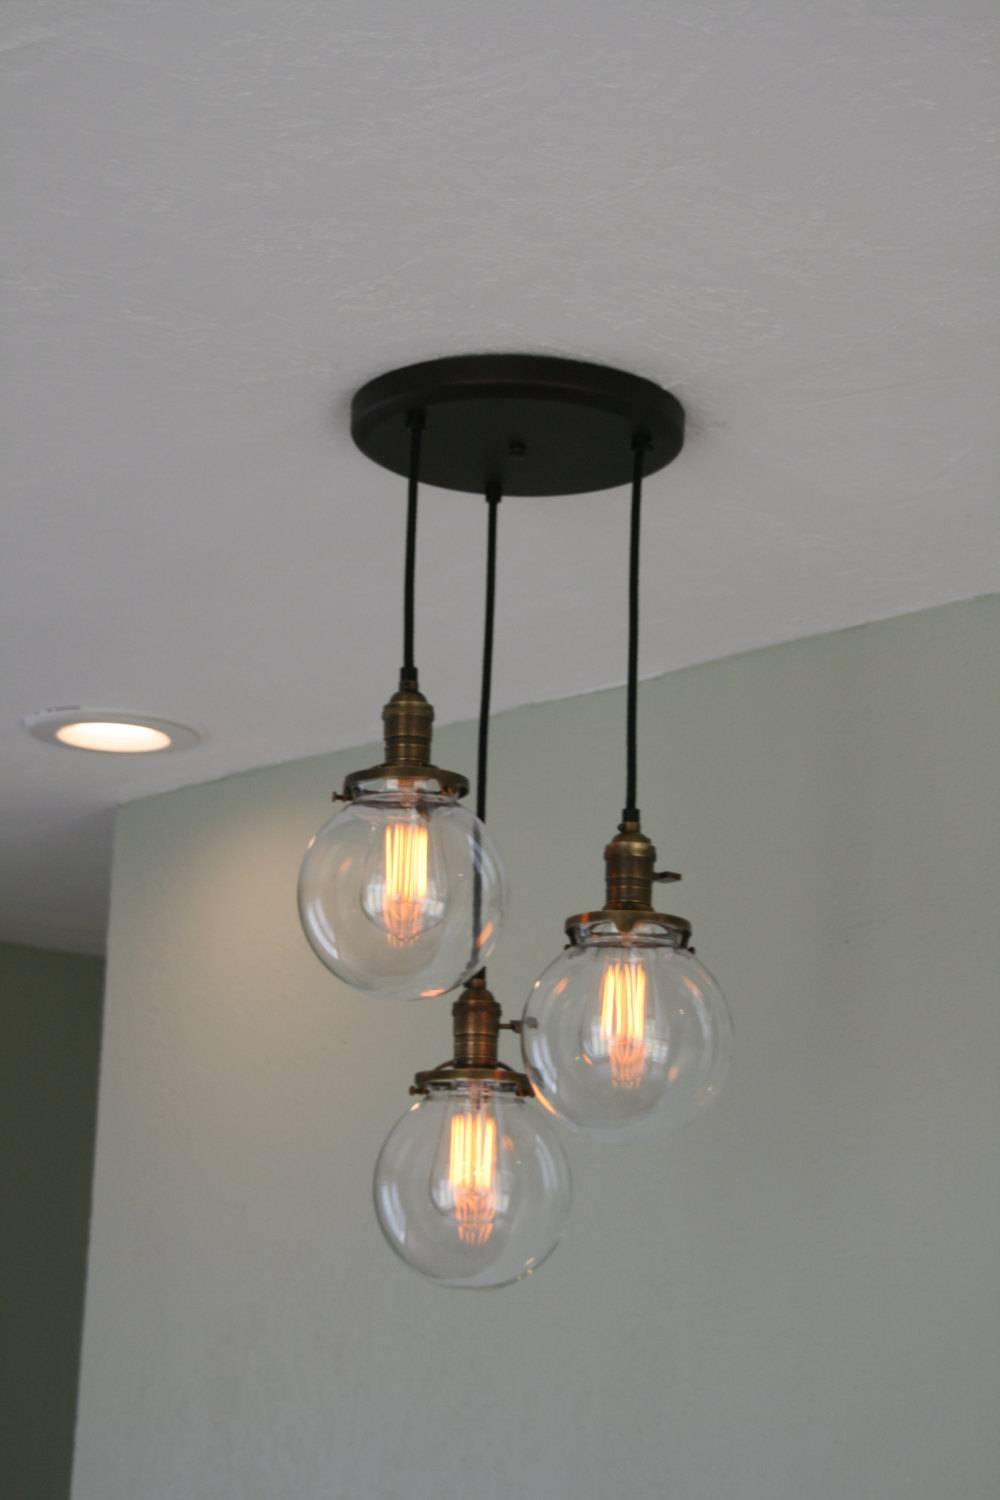 Homemade Chandelier Lowes - Editonline intended for Lowes Edison Pendant Lights (Image 3 of 15)